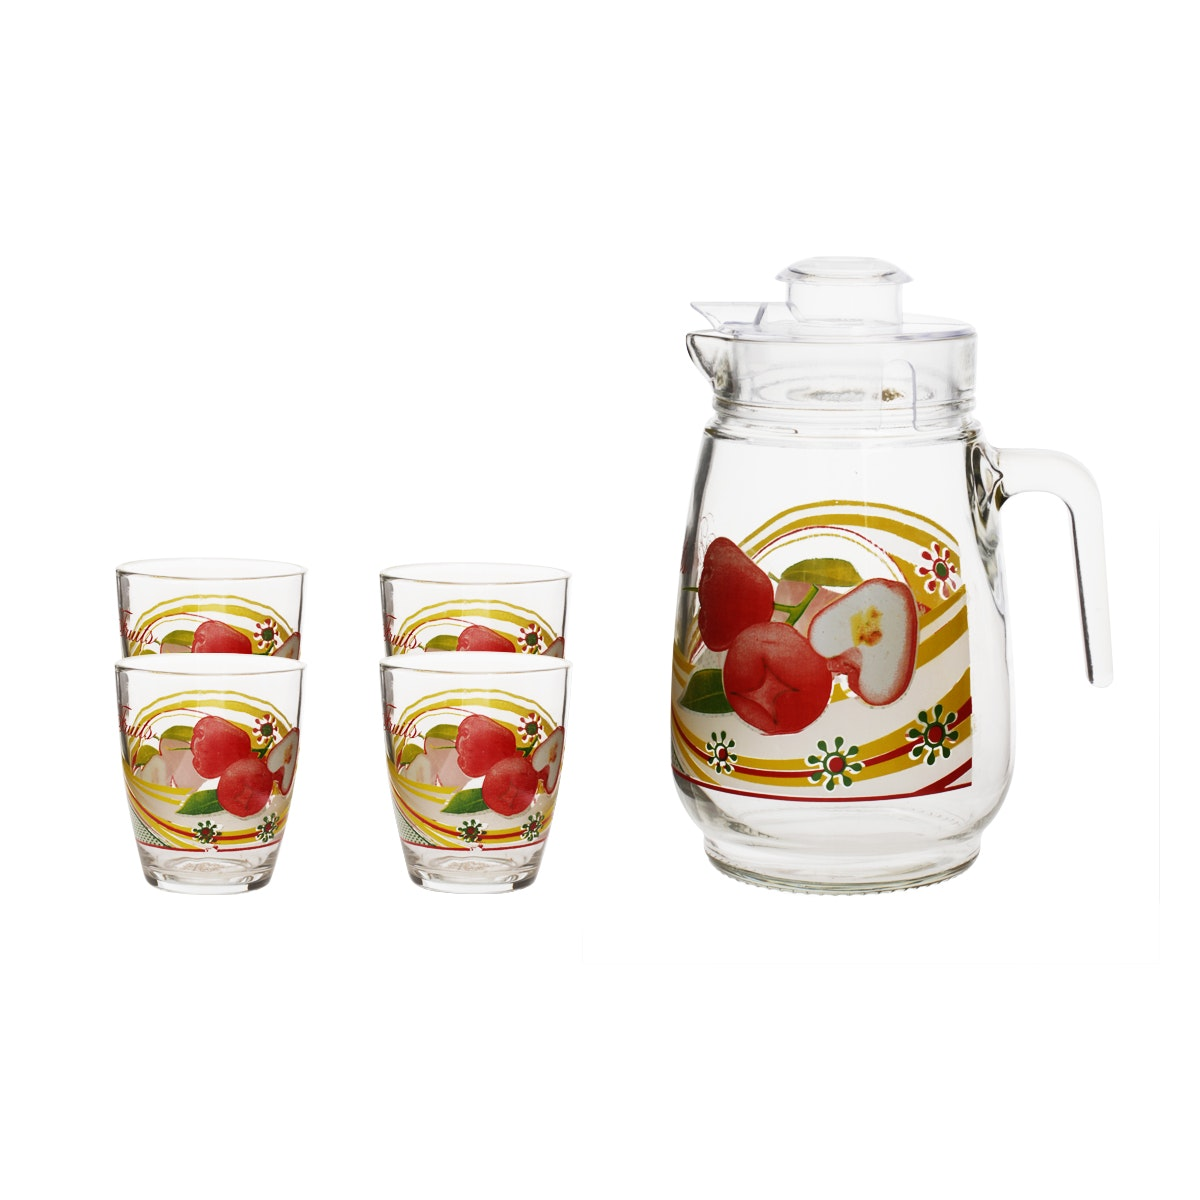 Kedaung Okina Pitcher Set IJ-1.25LC.PHT-7/D5-3GB